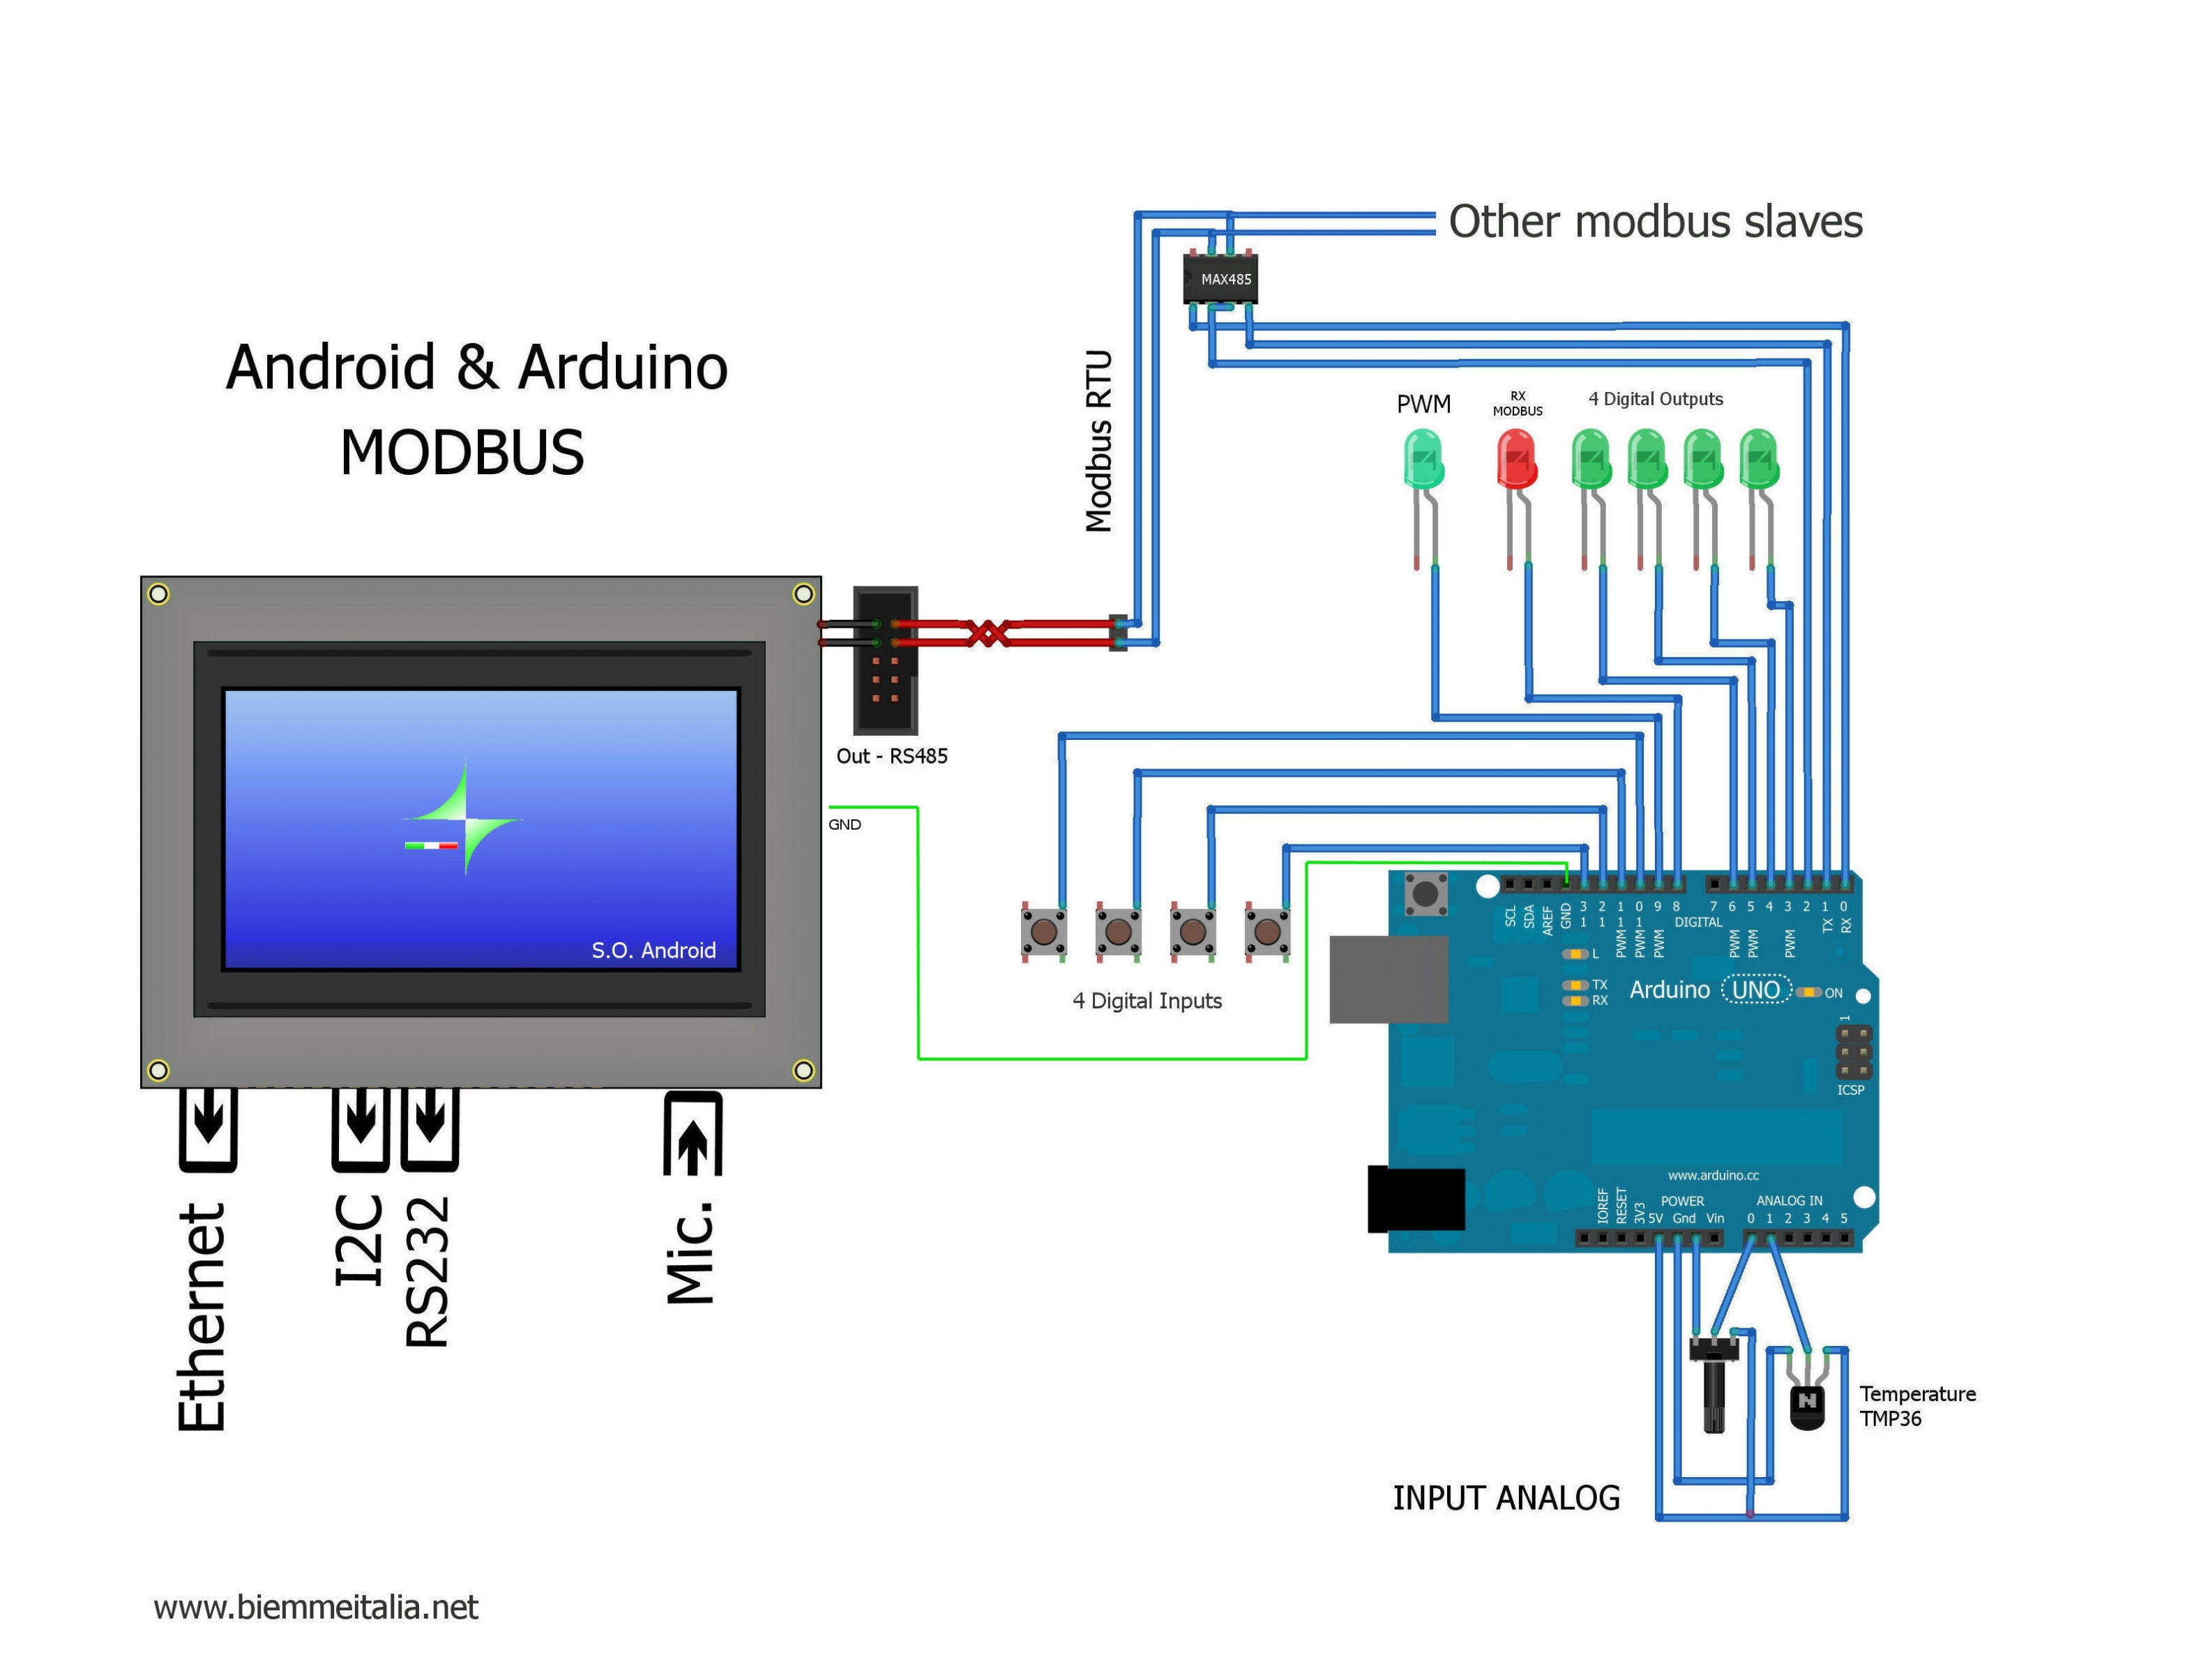 Rs485 Wiring Diagram Popular Modbusandroid For Modbus Rs485 Wiring - Rs485 Wiring Diagram